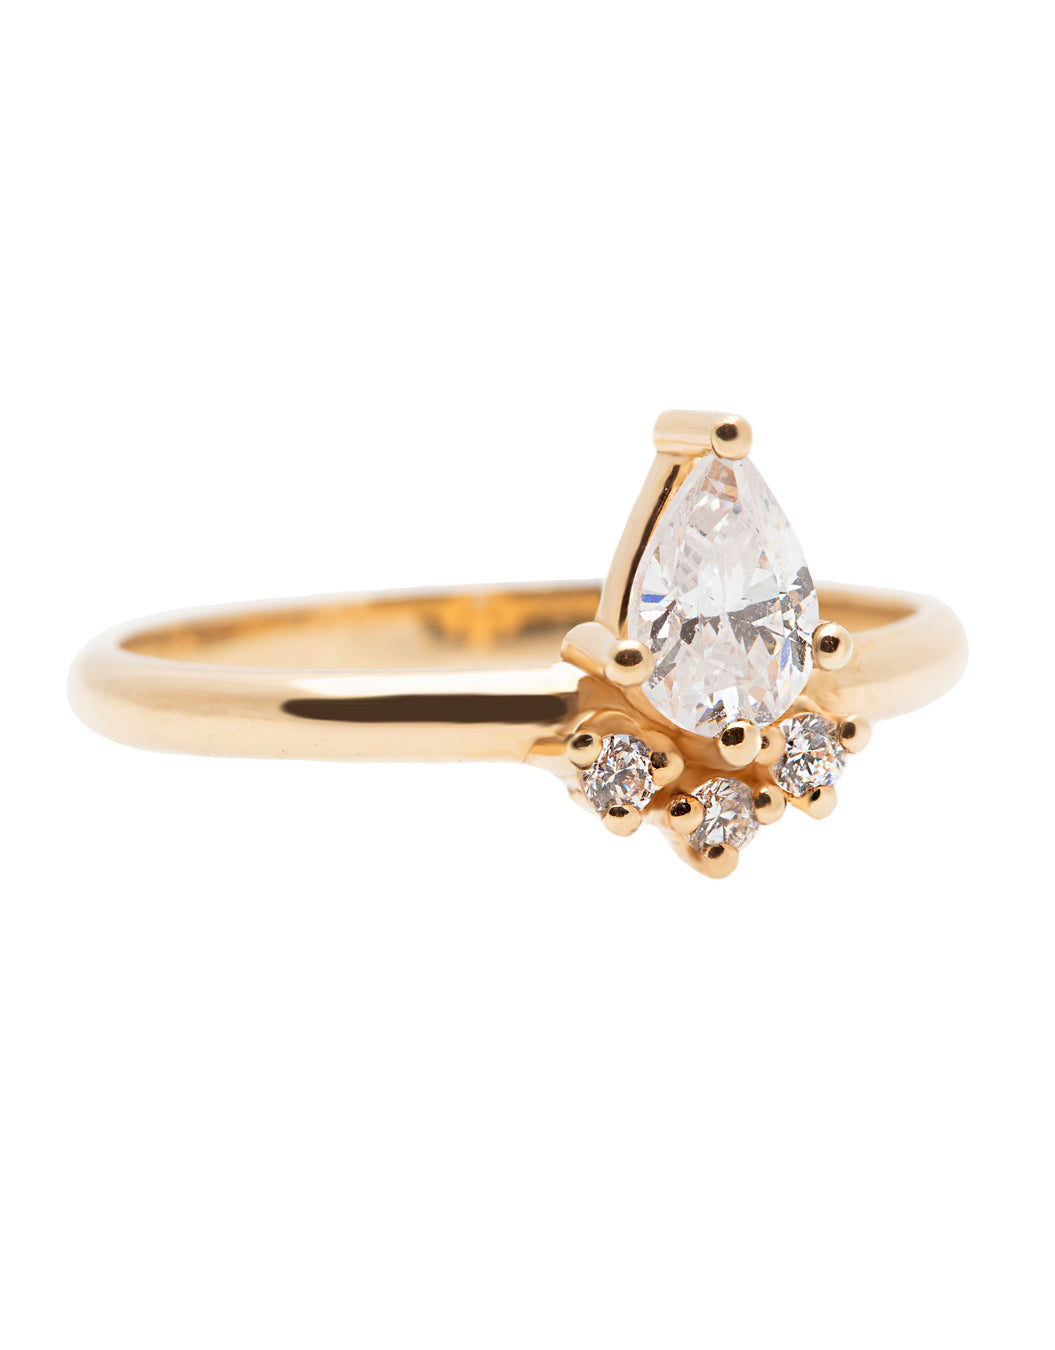 A 14k yellow gold engagement ring, set with a center pear cut white diamond and and halo of three small white diamonds.